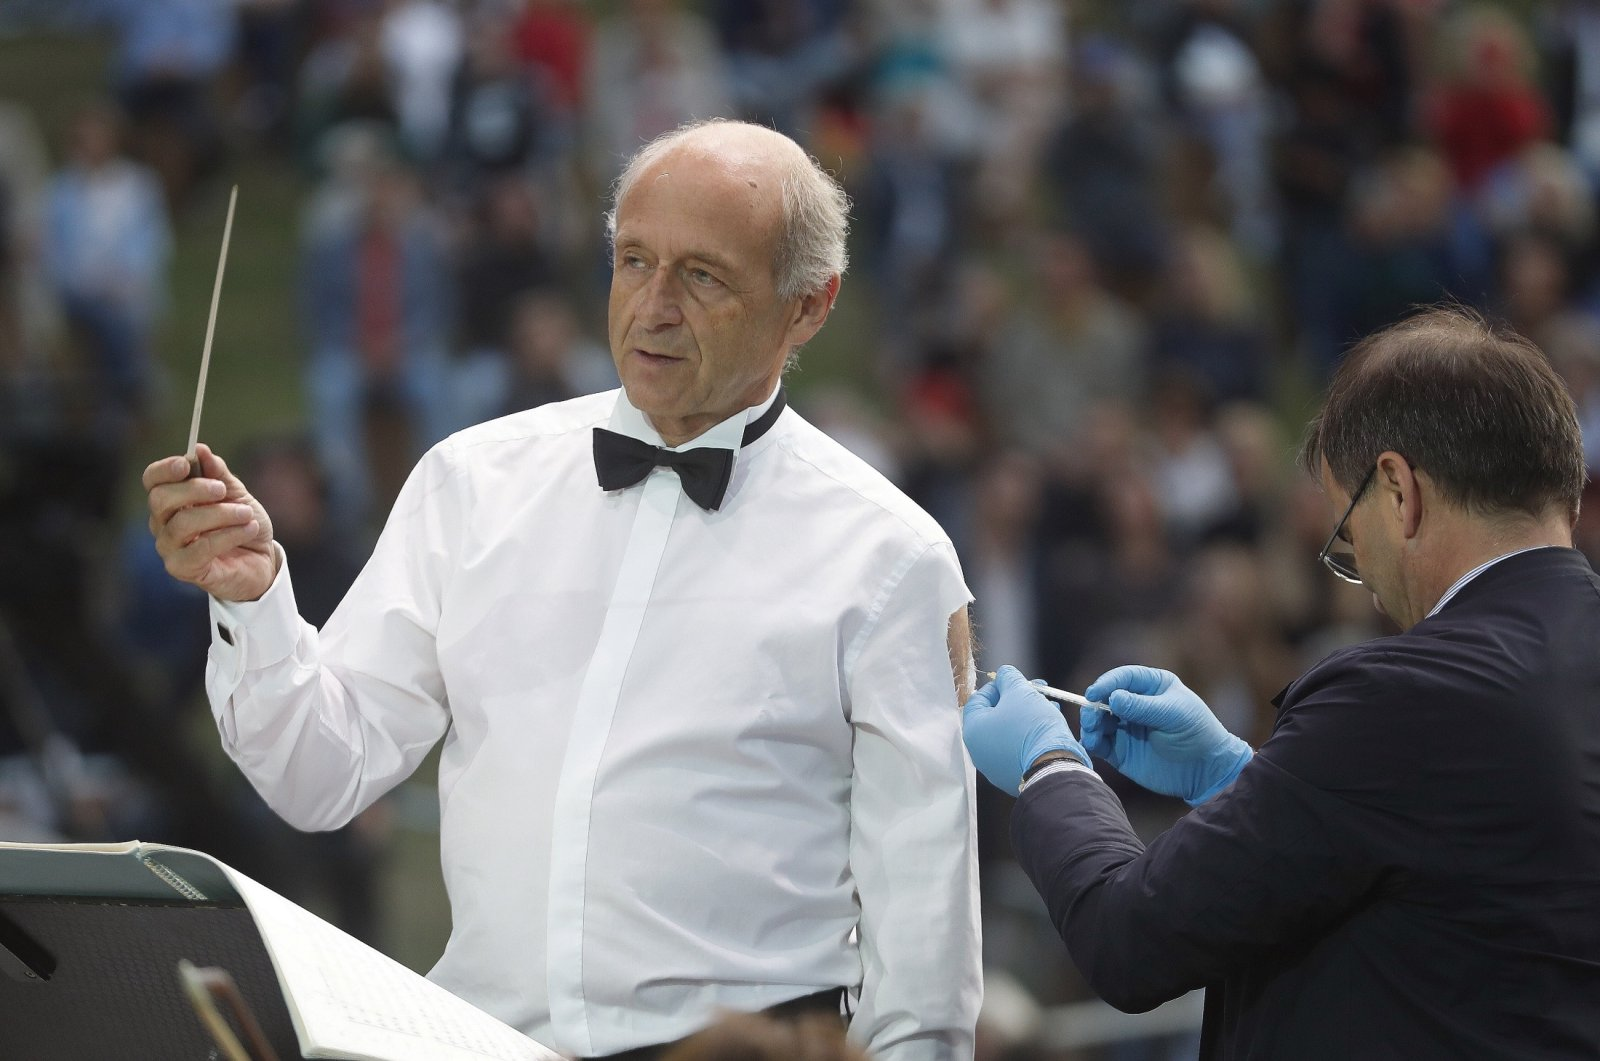 Ivan Fischer, the founder of the Budapest Festival Orchestra, receives his third dose of the COVID-19 vaccine as he conducts the orchestra, during their free concert in Budapest, Hungary, Aug. 25, 2021. (AP Photo)